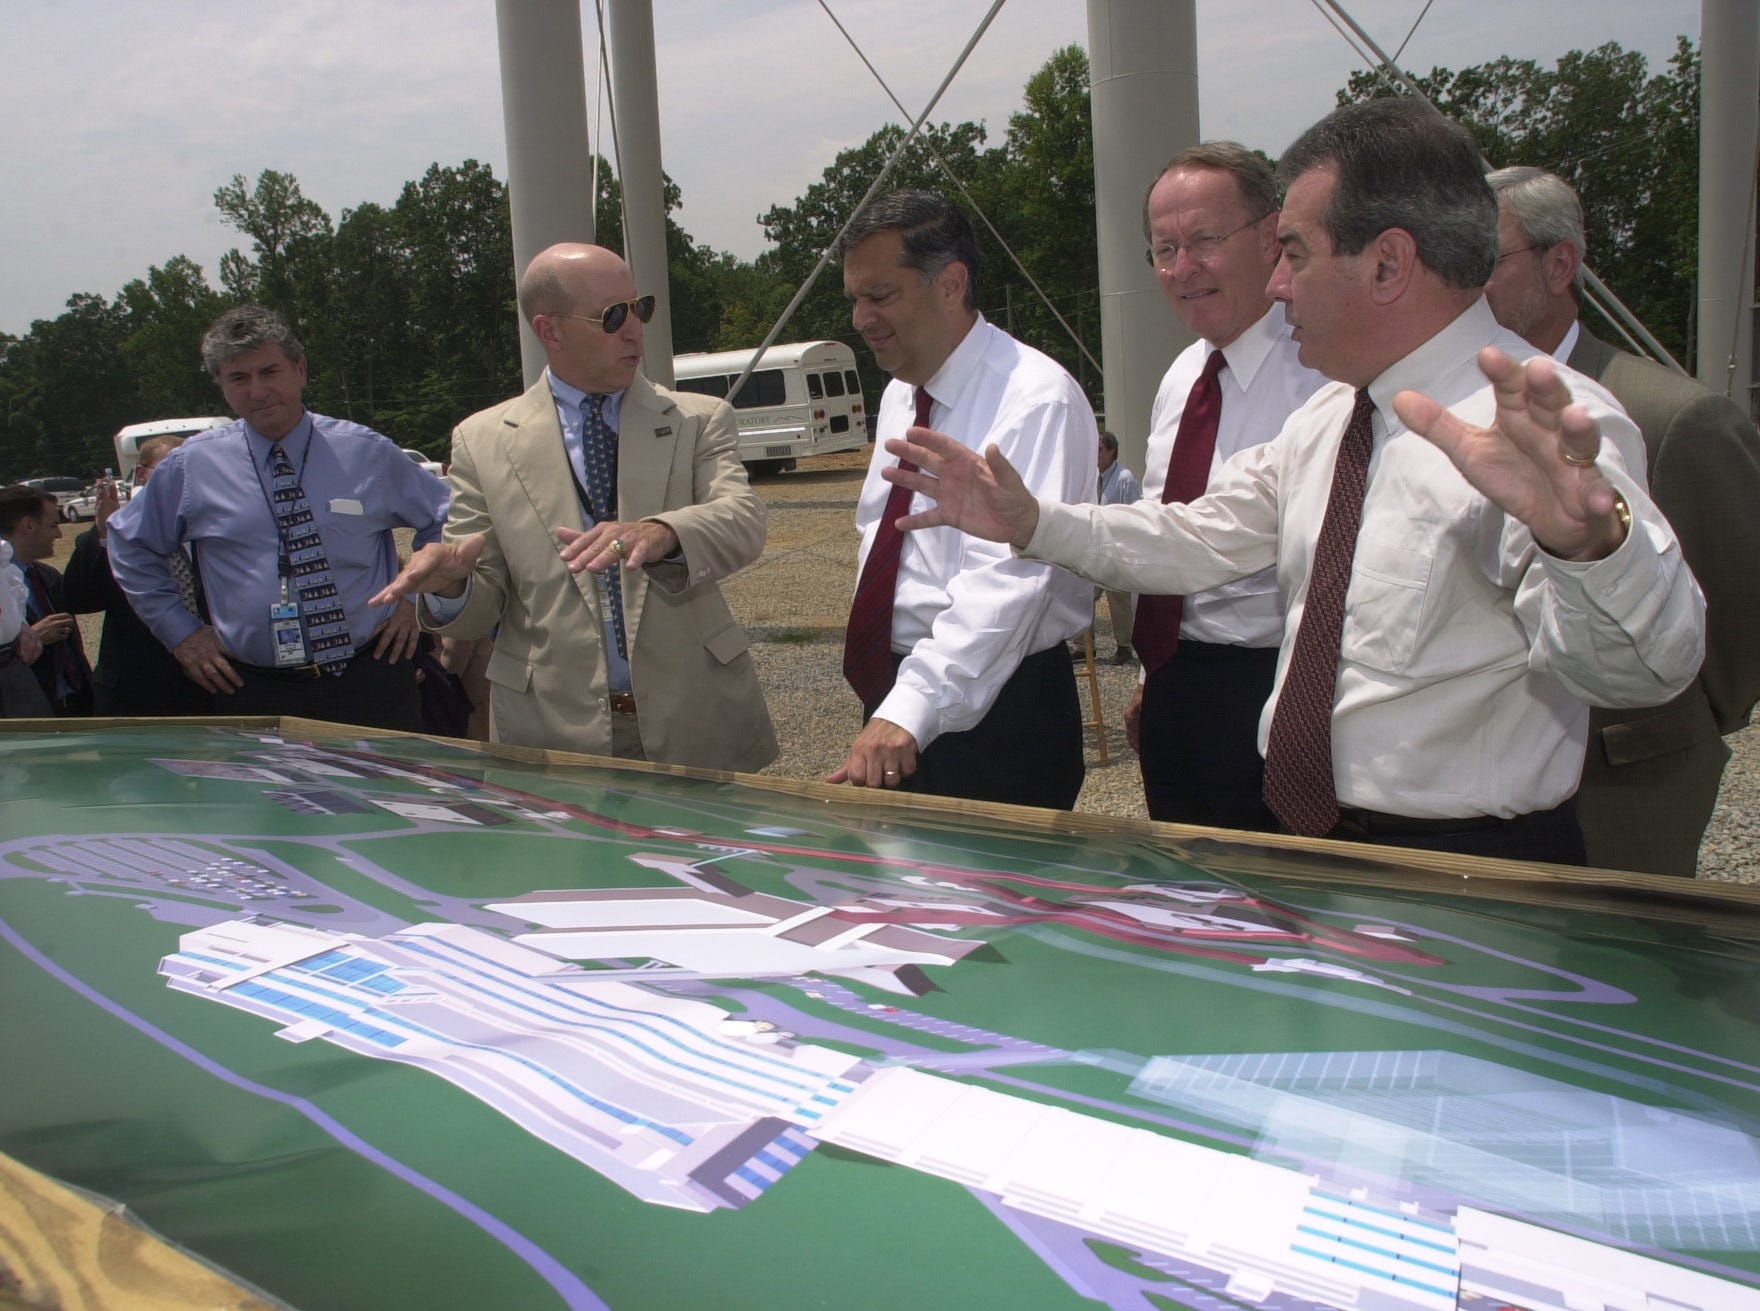 ORNL Director Bill Madia, right, gives an overview of the Spallation Neutron Source project to U.S. Energy Secretary Spencer Abraham, second from left, and Sen. Lamar Alexander Friday at the Oak Ridge National Laboratory. At left is SNS Deputy Project Director Carl Strawbridge. Abraham and Alexander attended a groundbreaking ceremony for the $65 million Center for Nanophase Materials Sciences.